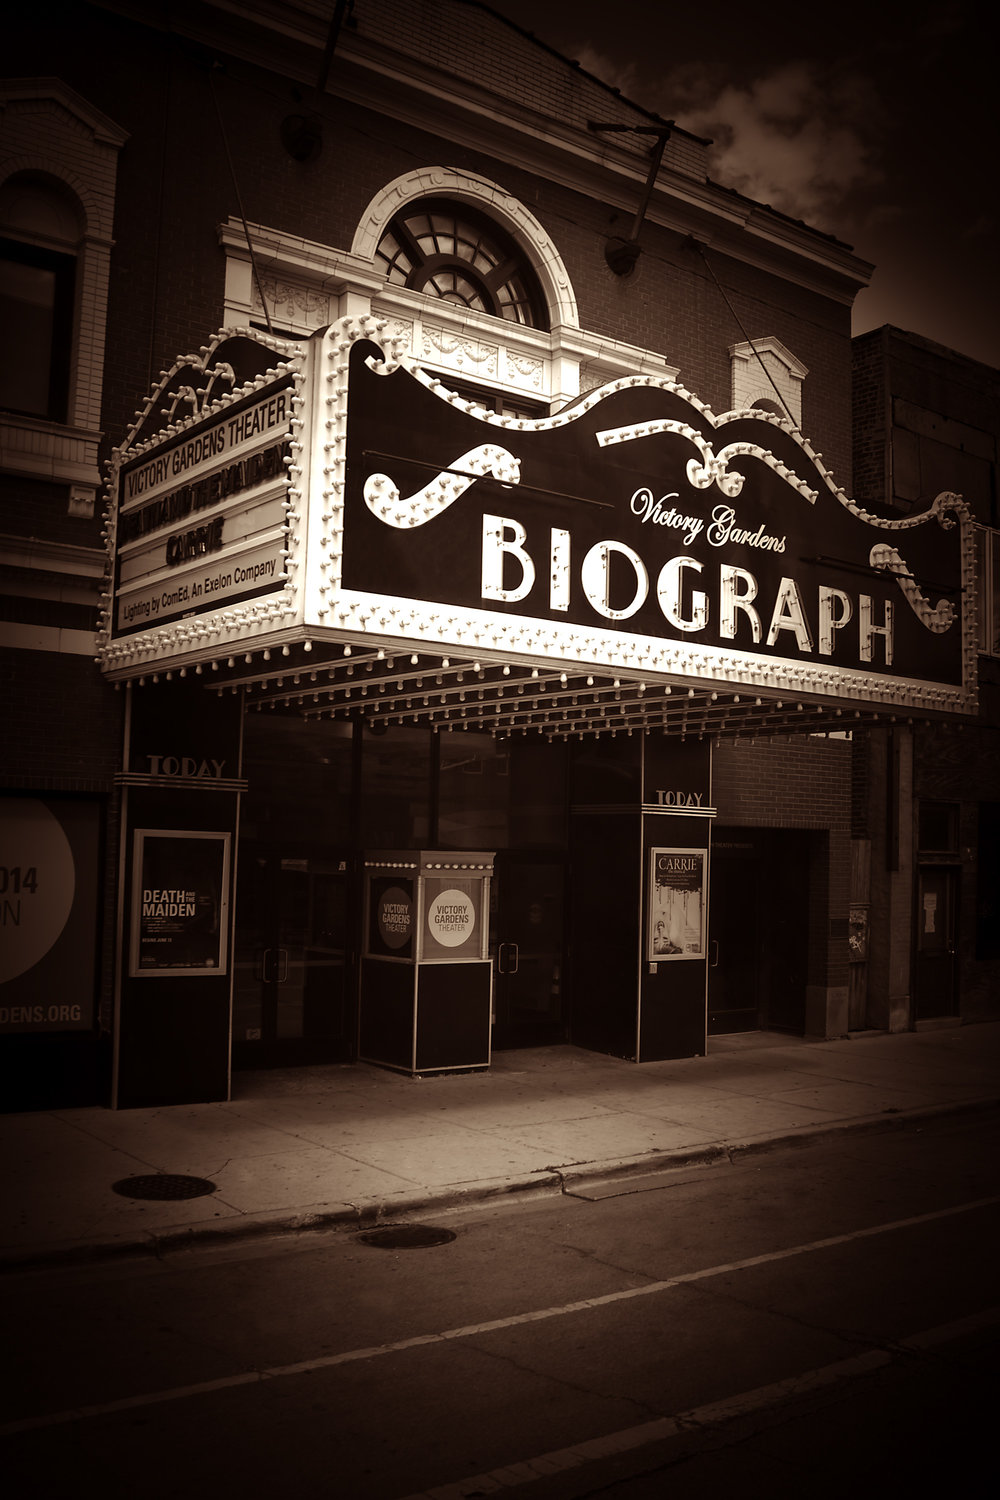 Biograph Theater in Chicago, IL